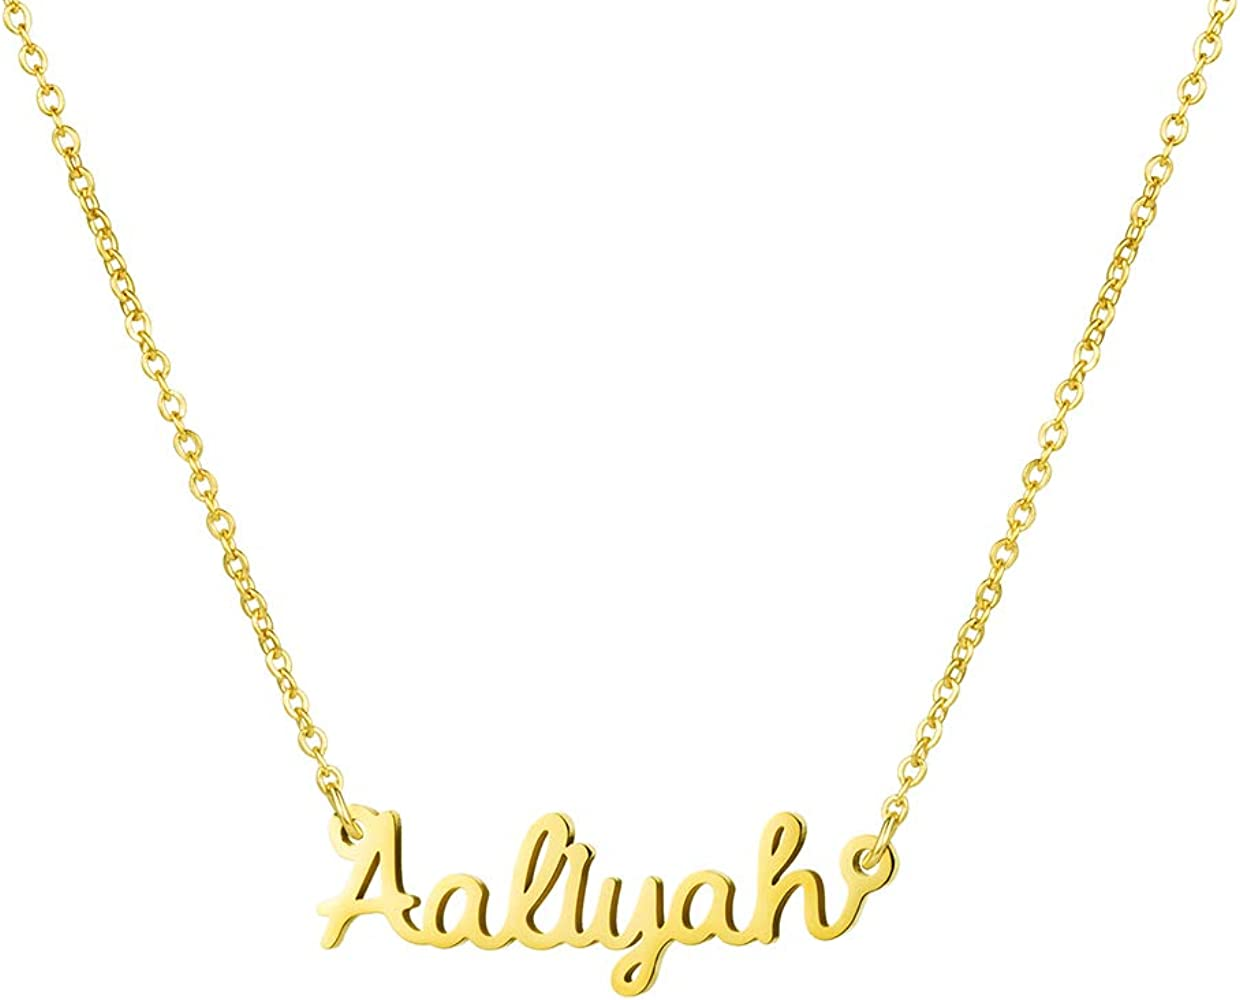 LoEnMe Jewelry Customized Sharpe Name Necklace Stainless Steel Plated Custom Made of Last Name Gift for Family